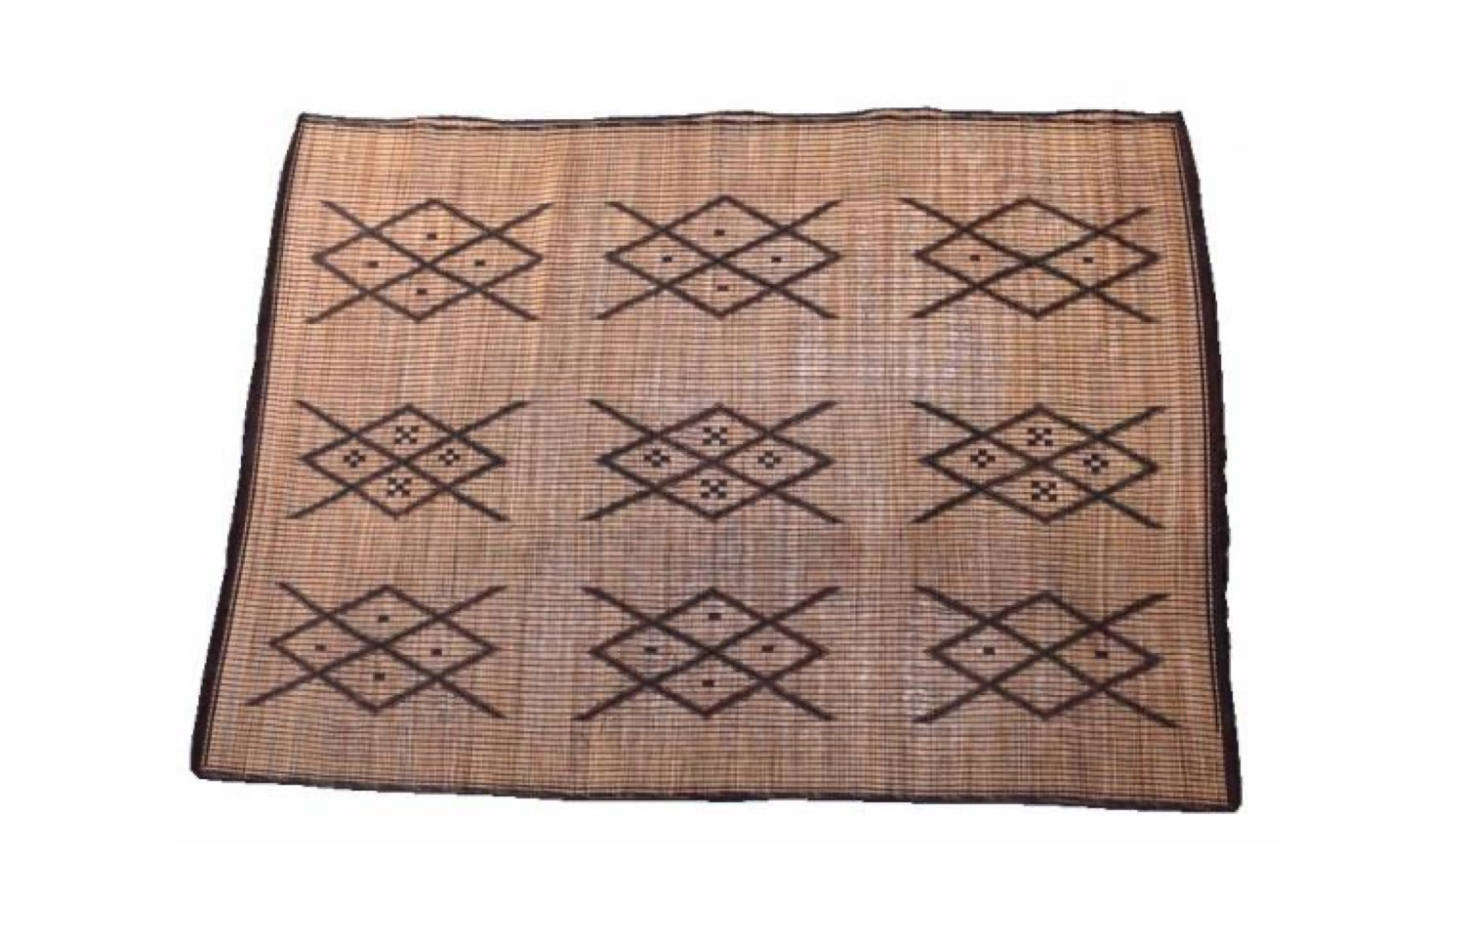 Katie purchased the Tuareg mat from Kulchi. From the website: &#8